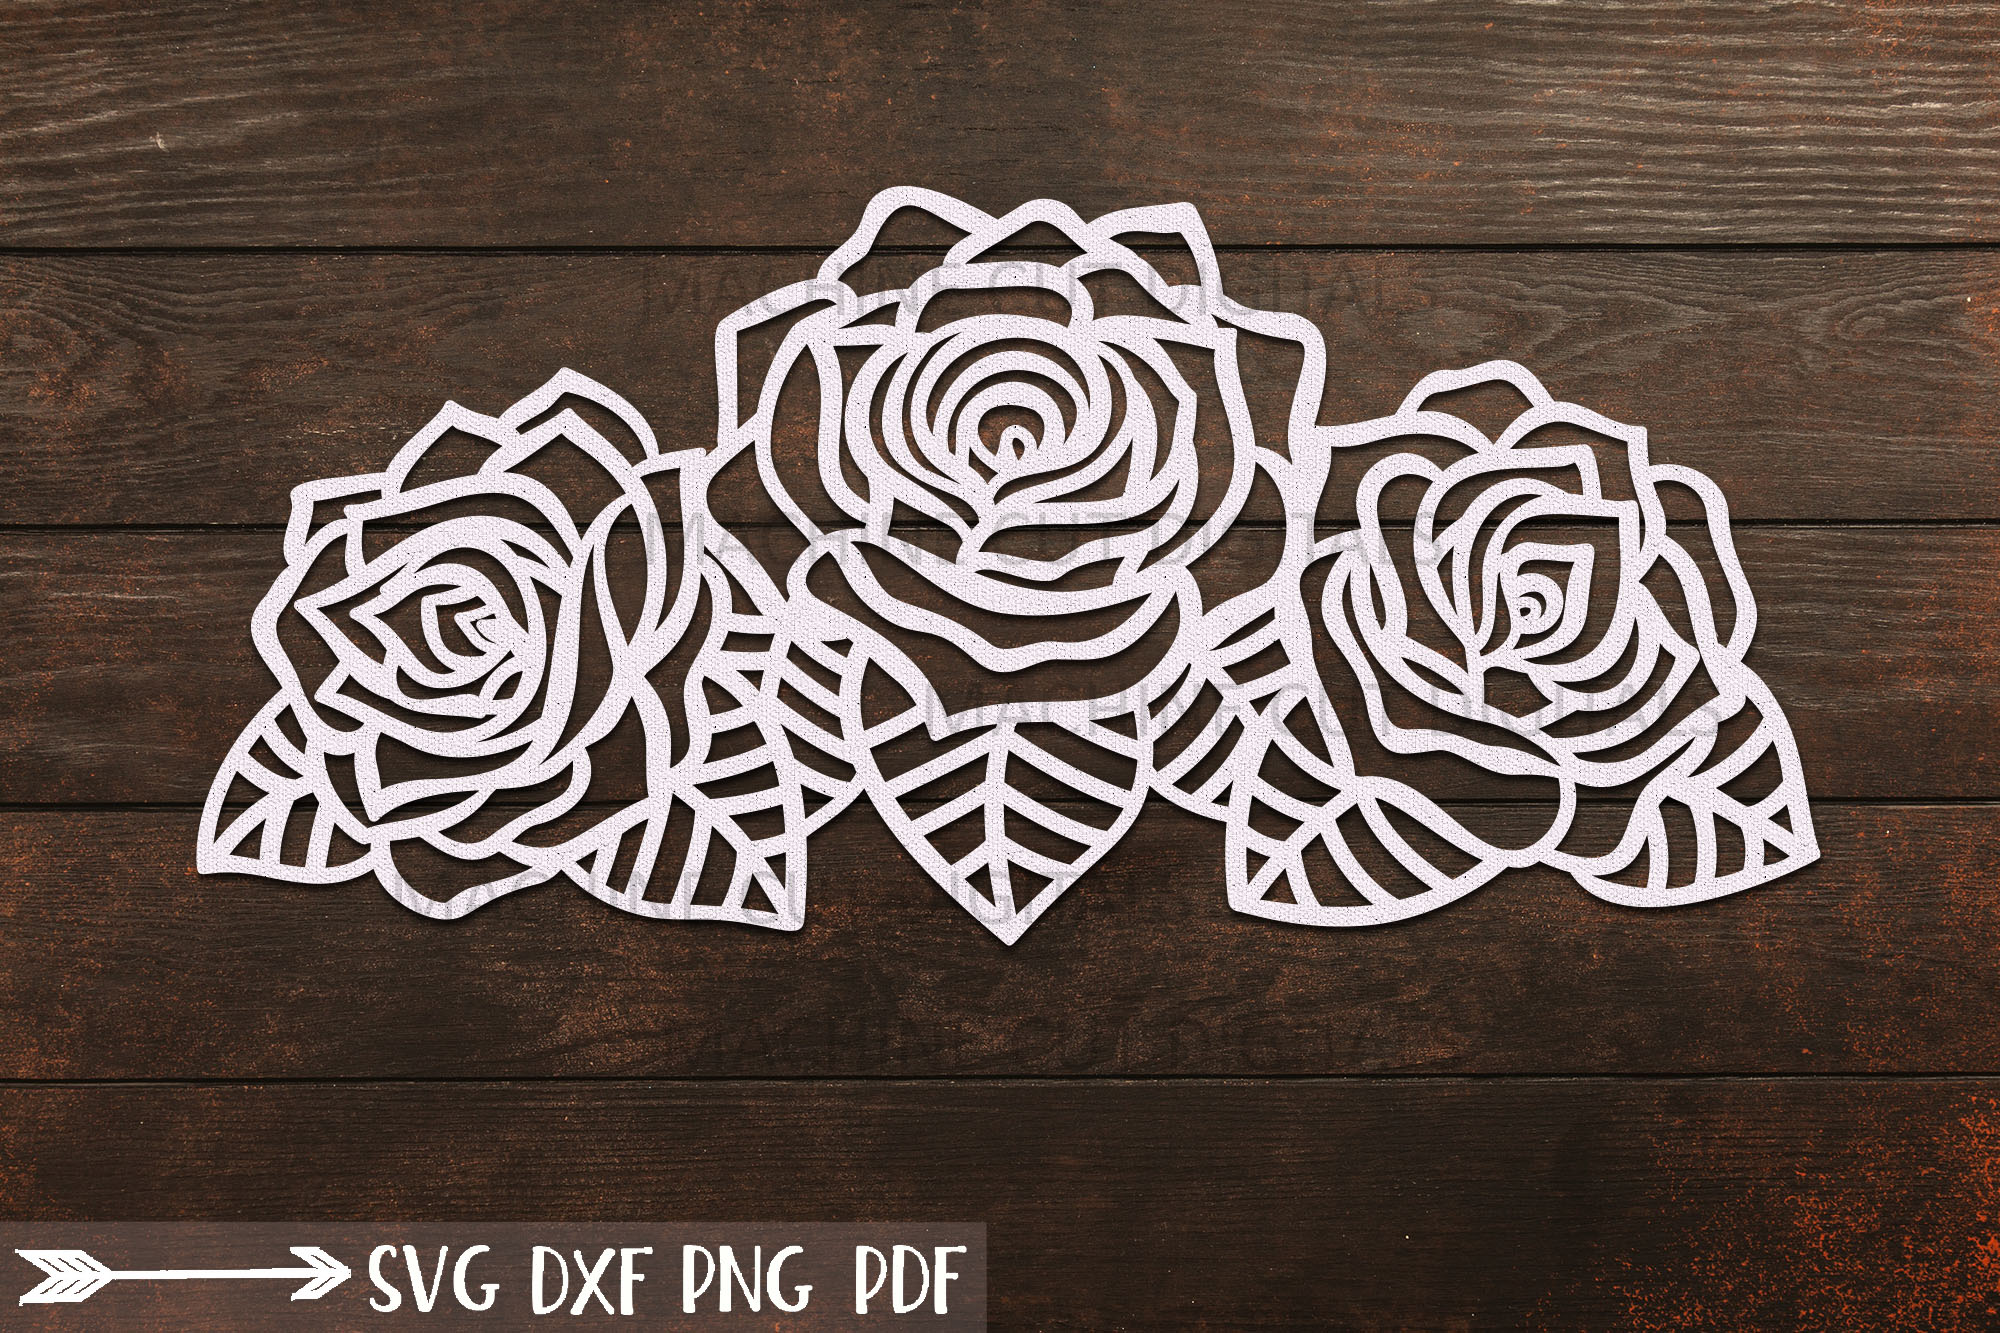 Roses with Leaves Border SVG File